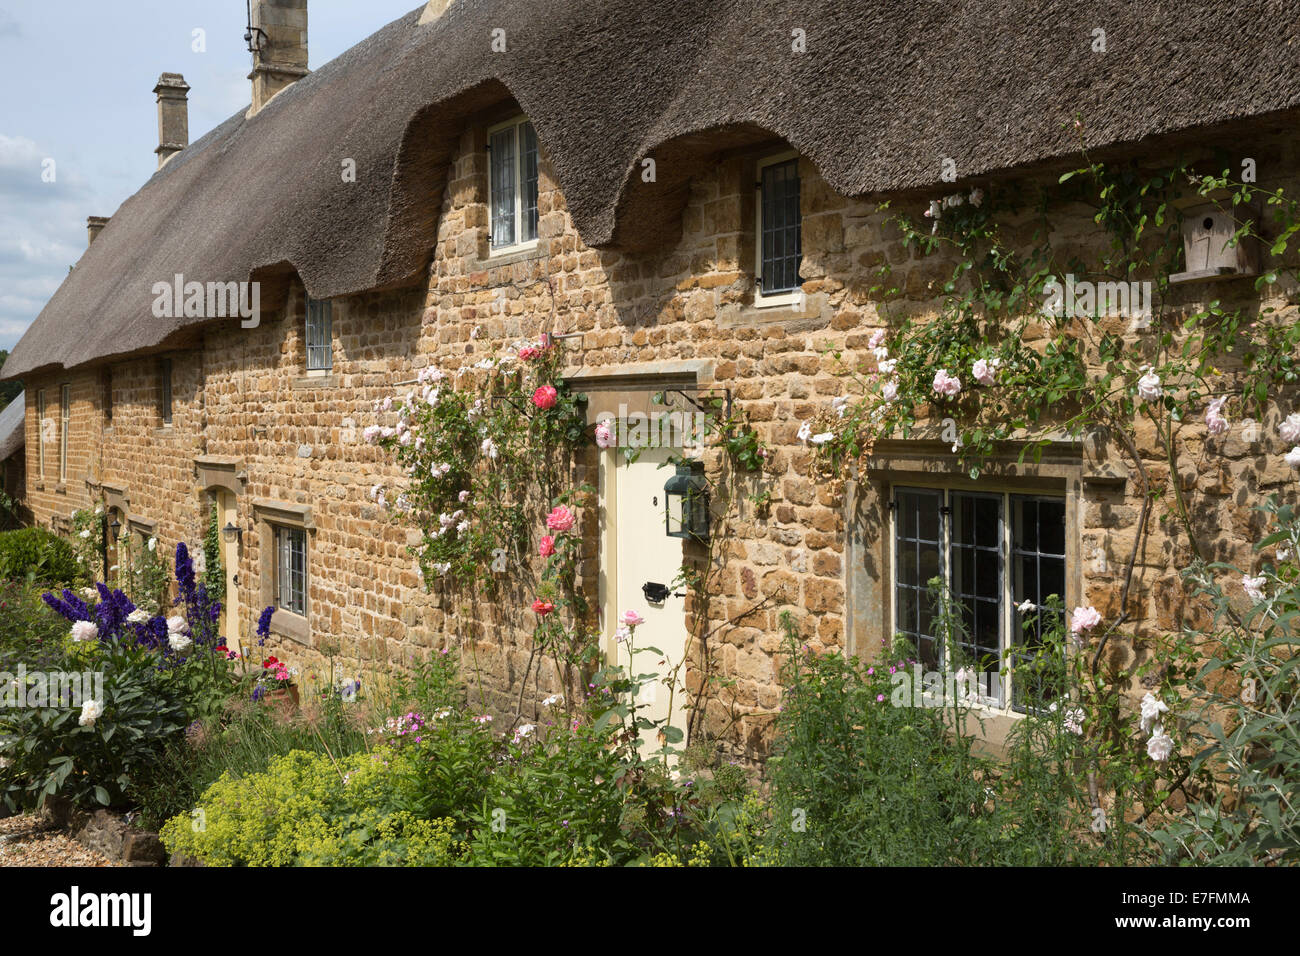 Rose Covered Cotswold Stone Thatched Cottages Great Tew Cotswolds Oxfordshire England United Kingdom Europe